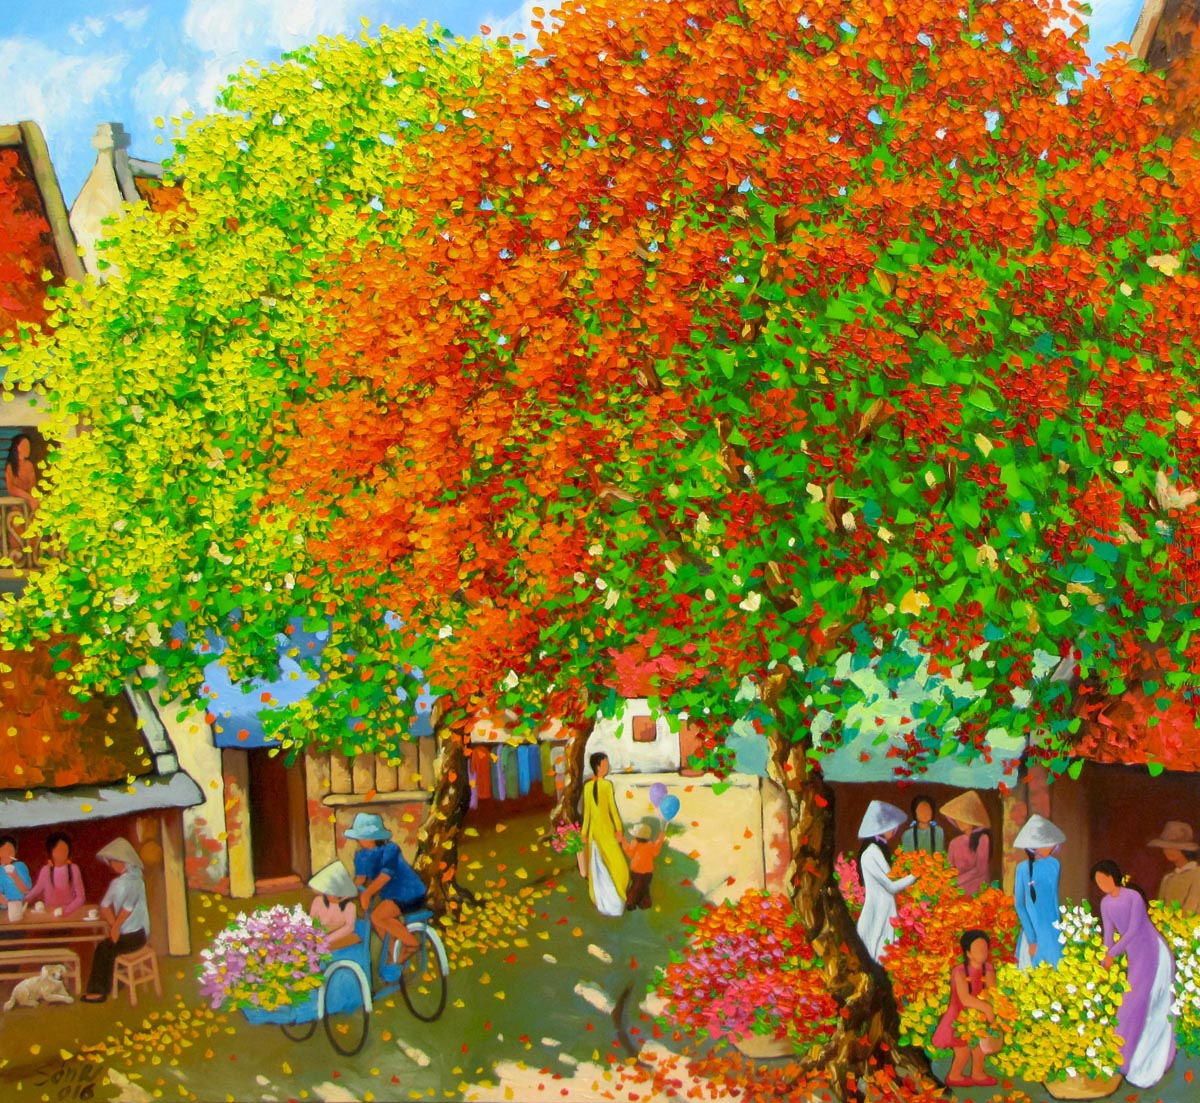 Duong-Ngoc-Son-Busy-morning-in-Spring 02-100x110cm